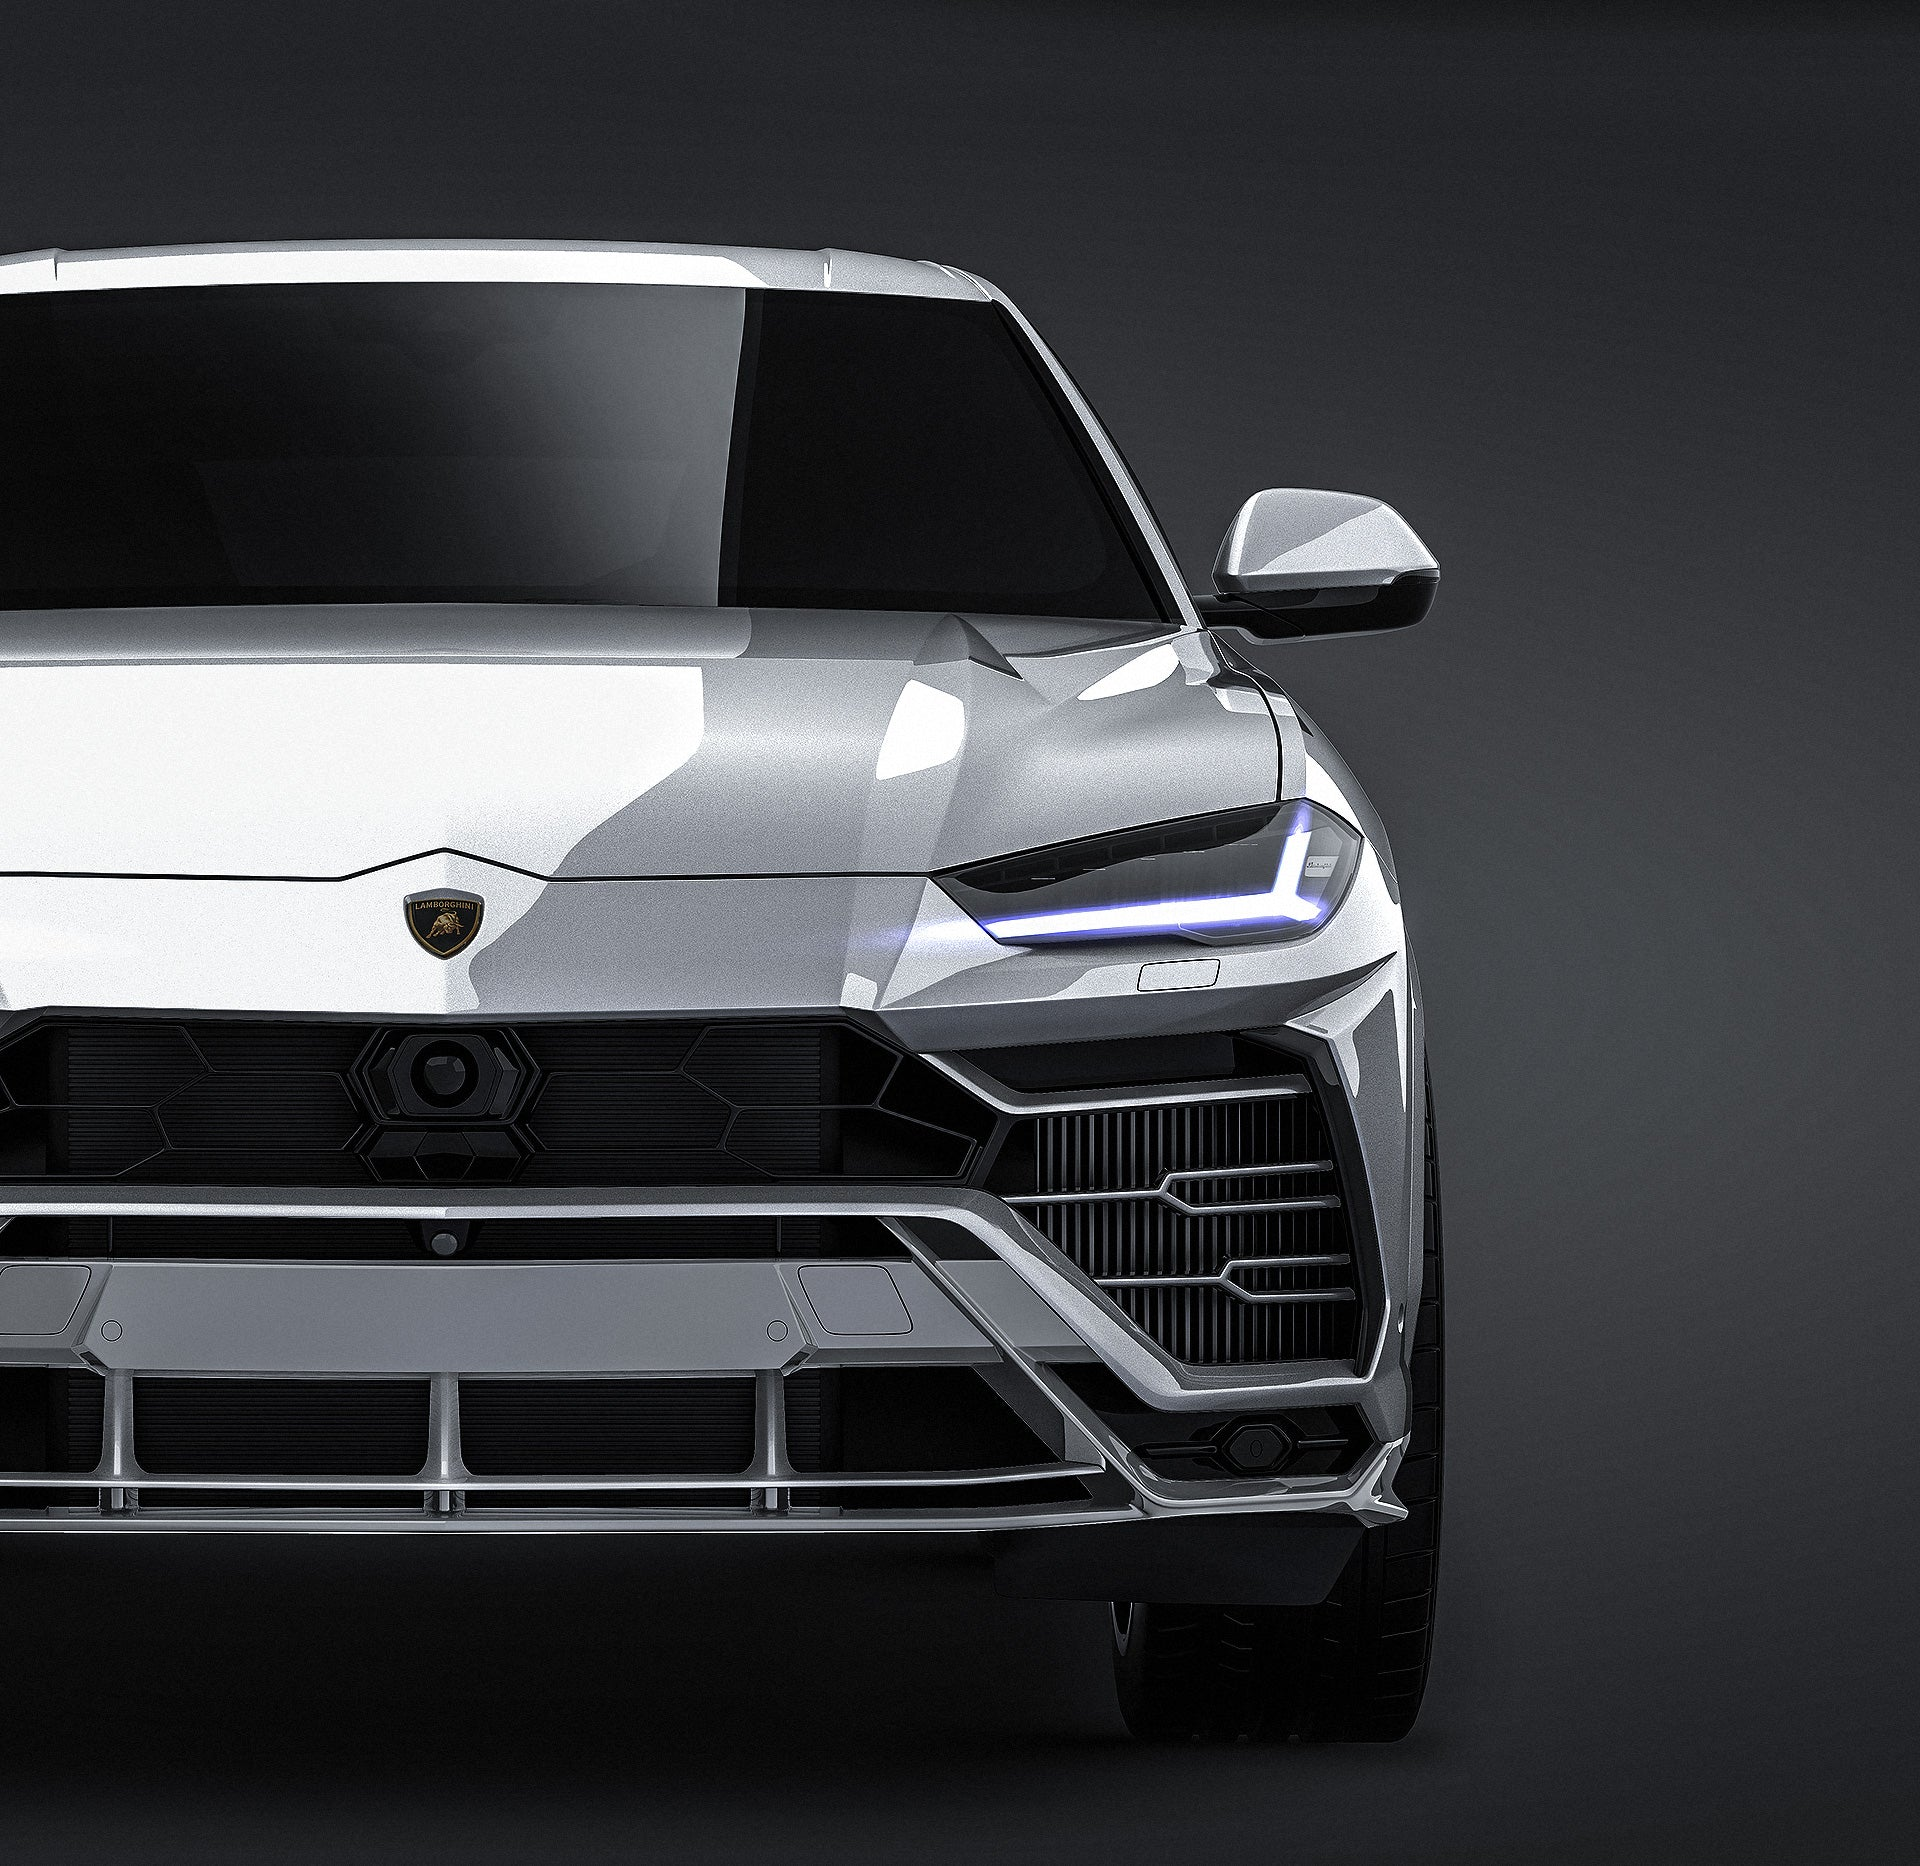 Lamborghini Urus 2019  all sides Car Mockup Template.psd